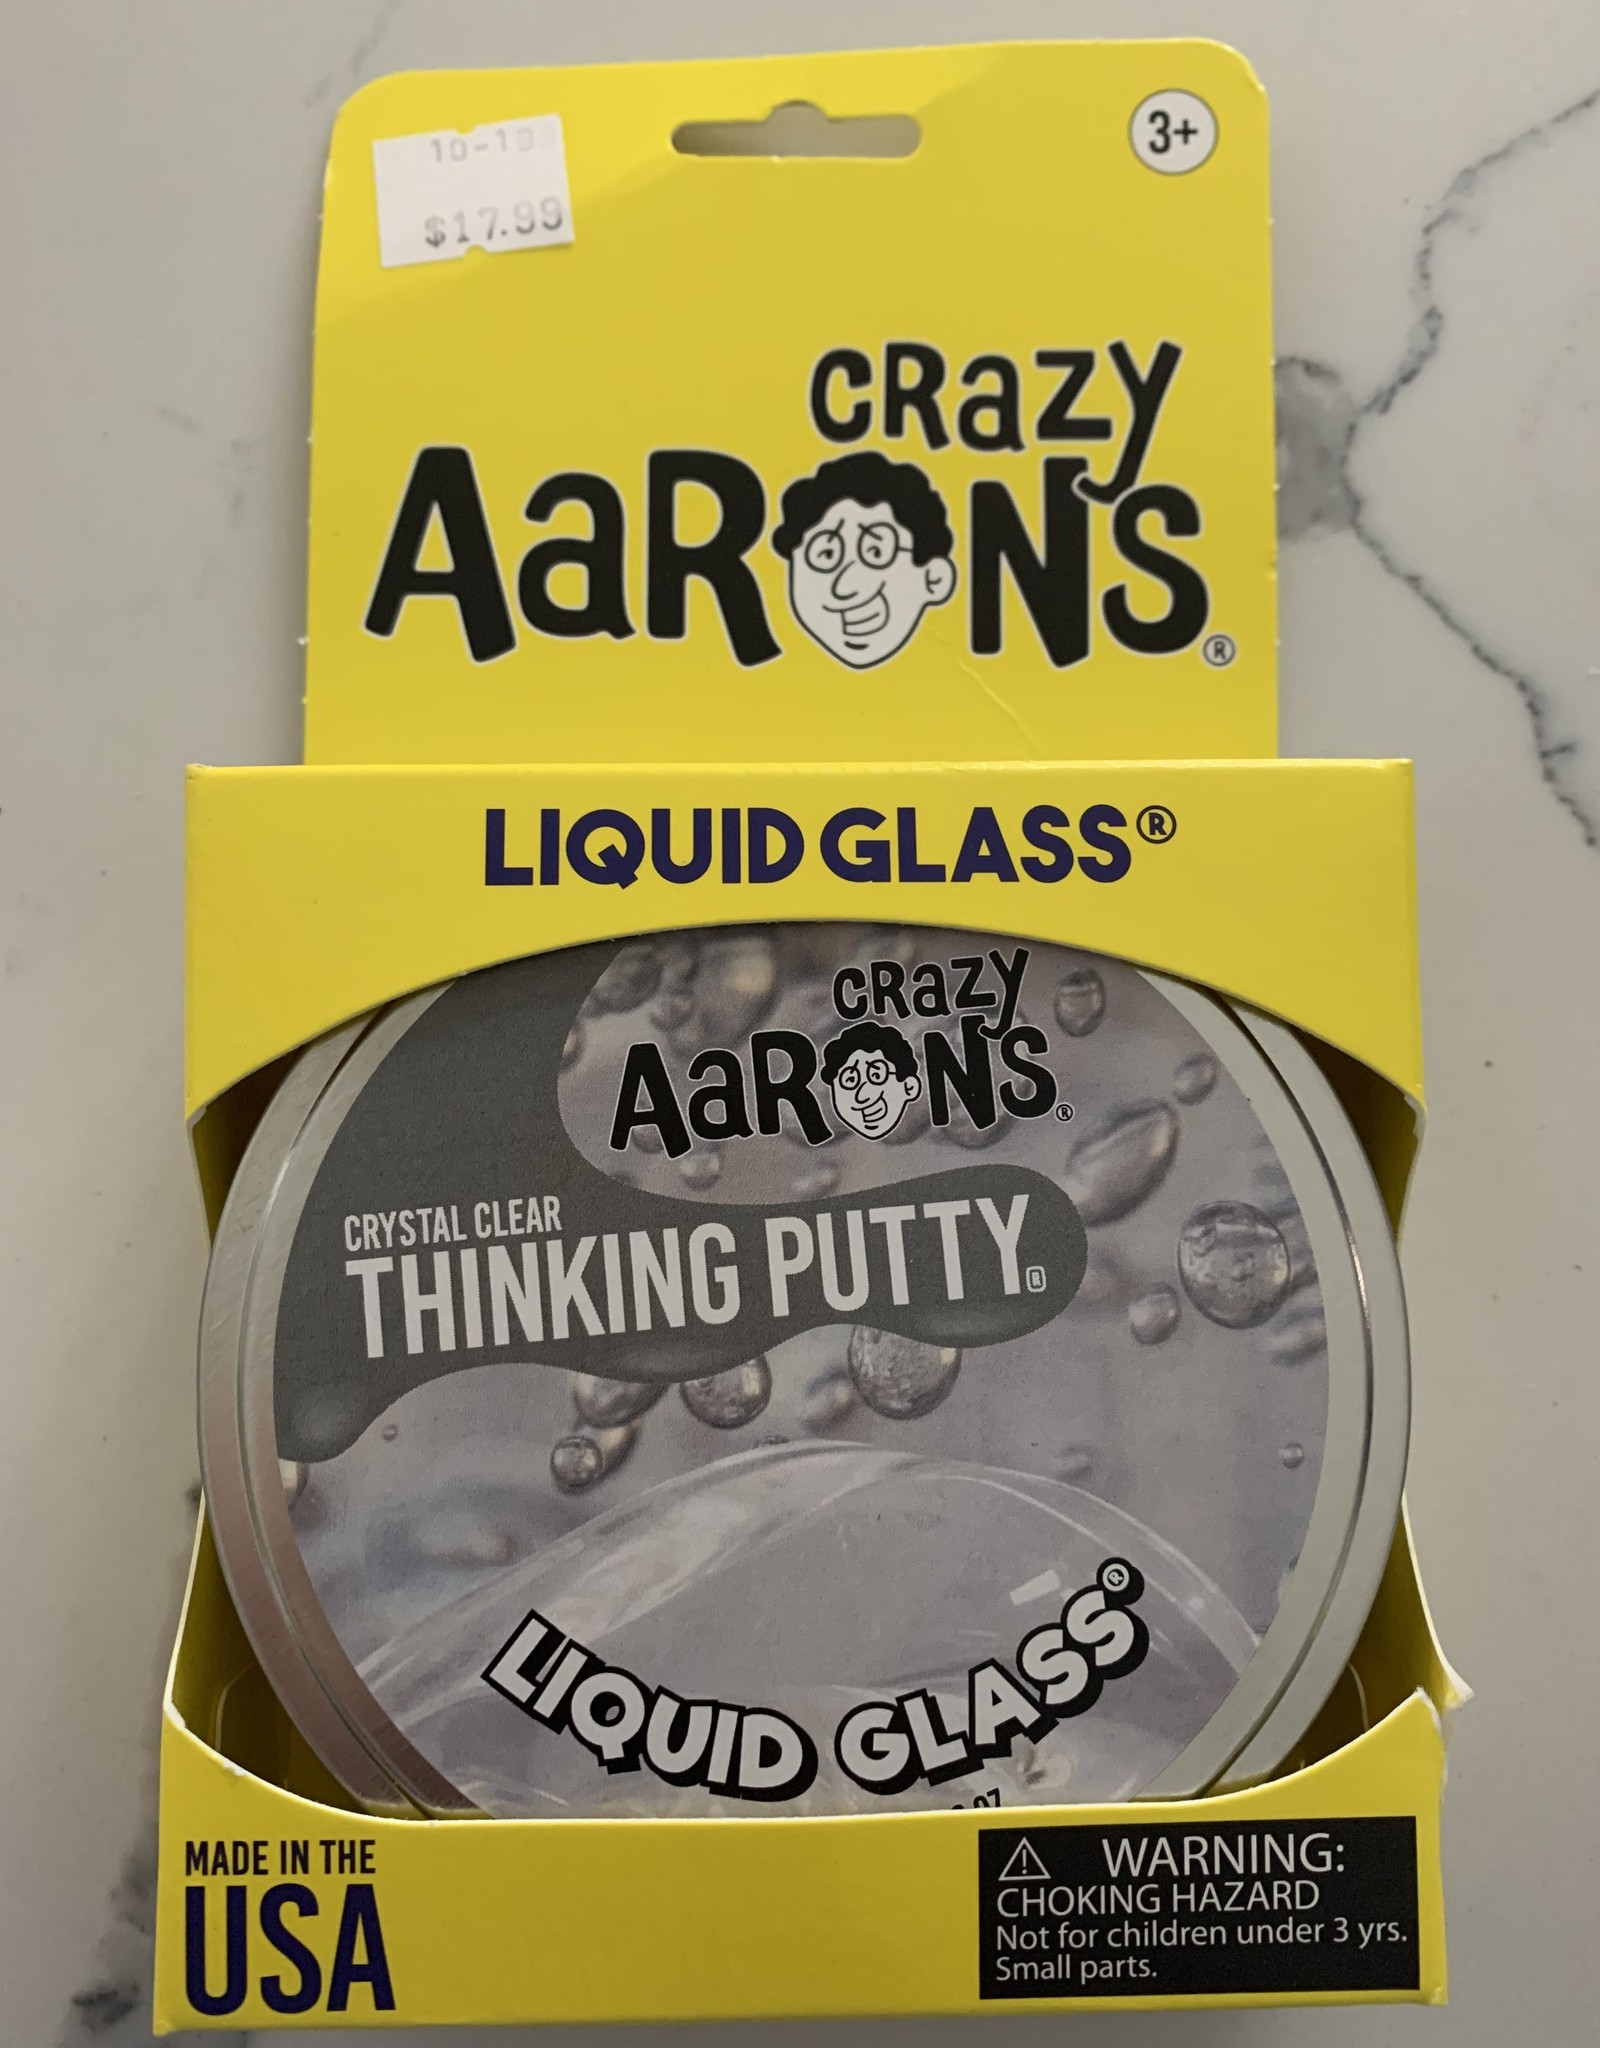 CRAZY AARON ENTERPRISES Crazy Aaron's Liquid Glass Putty